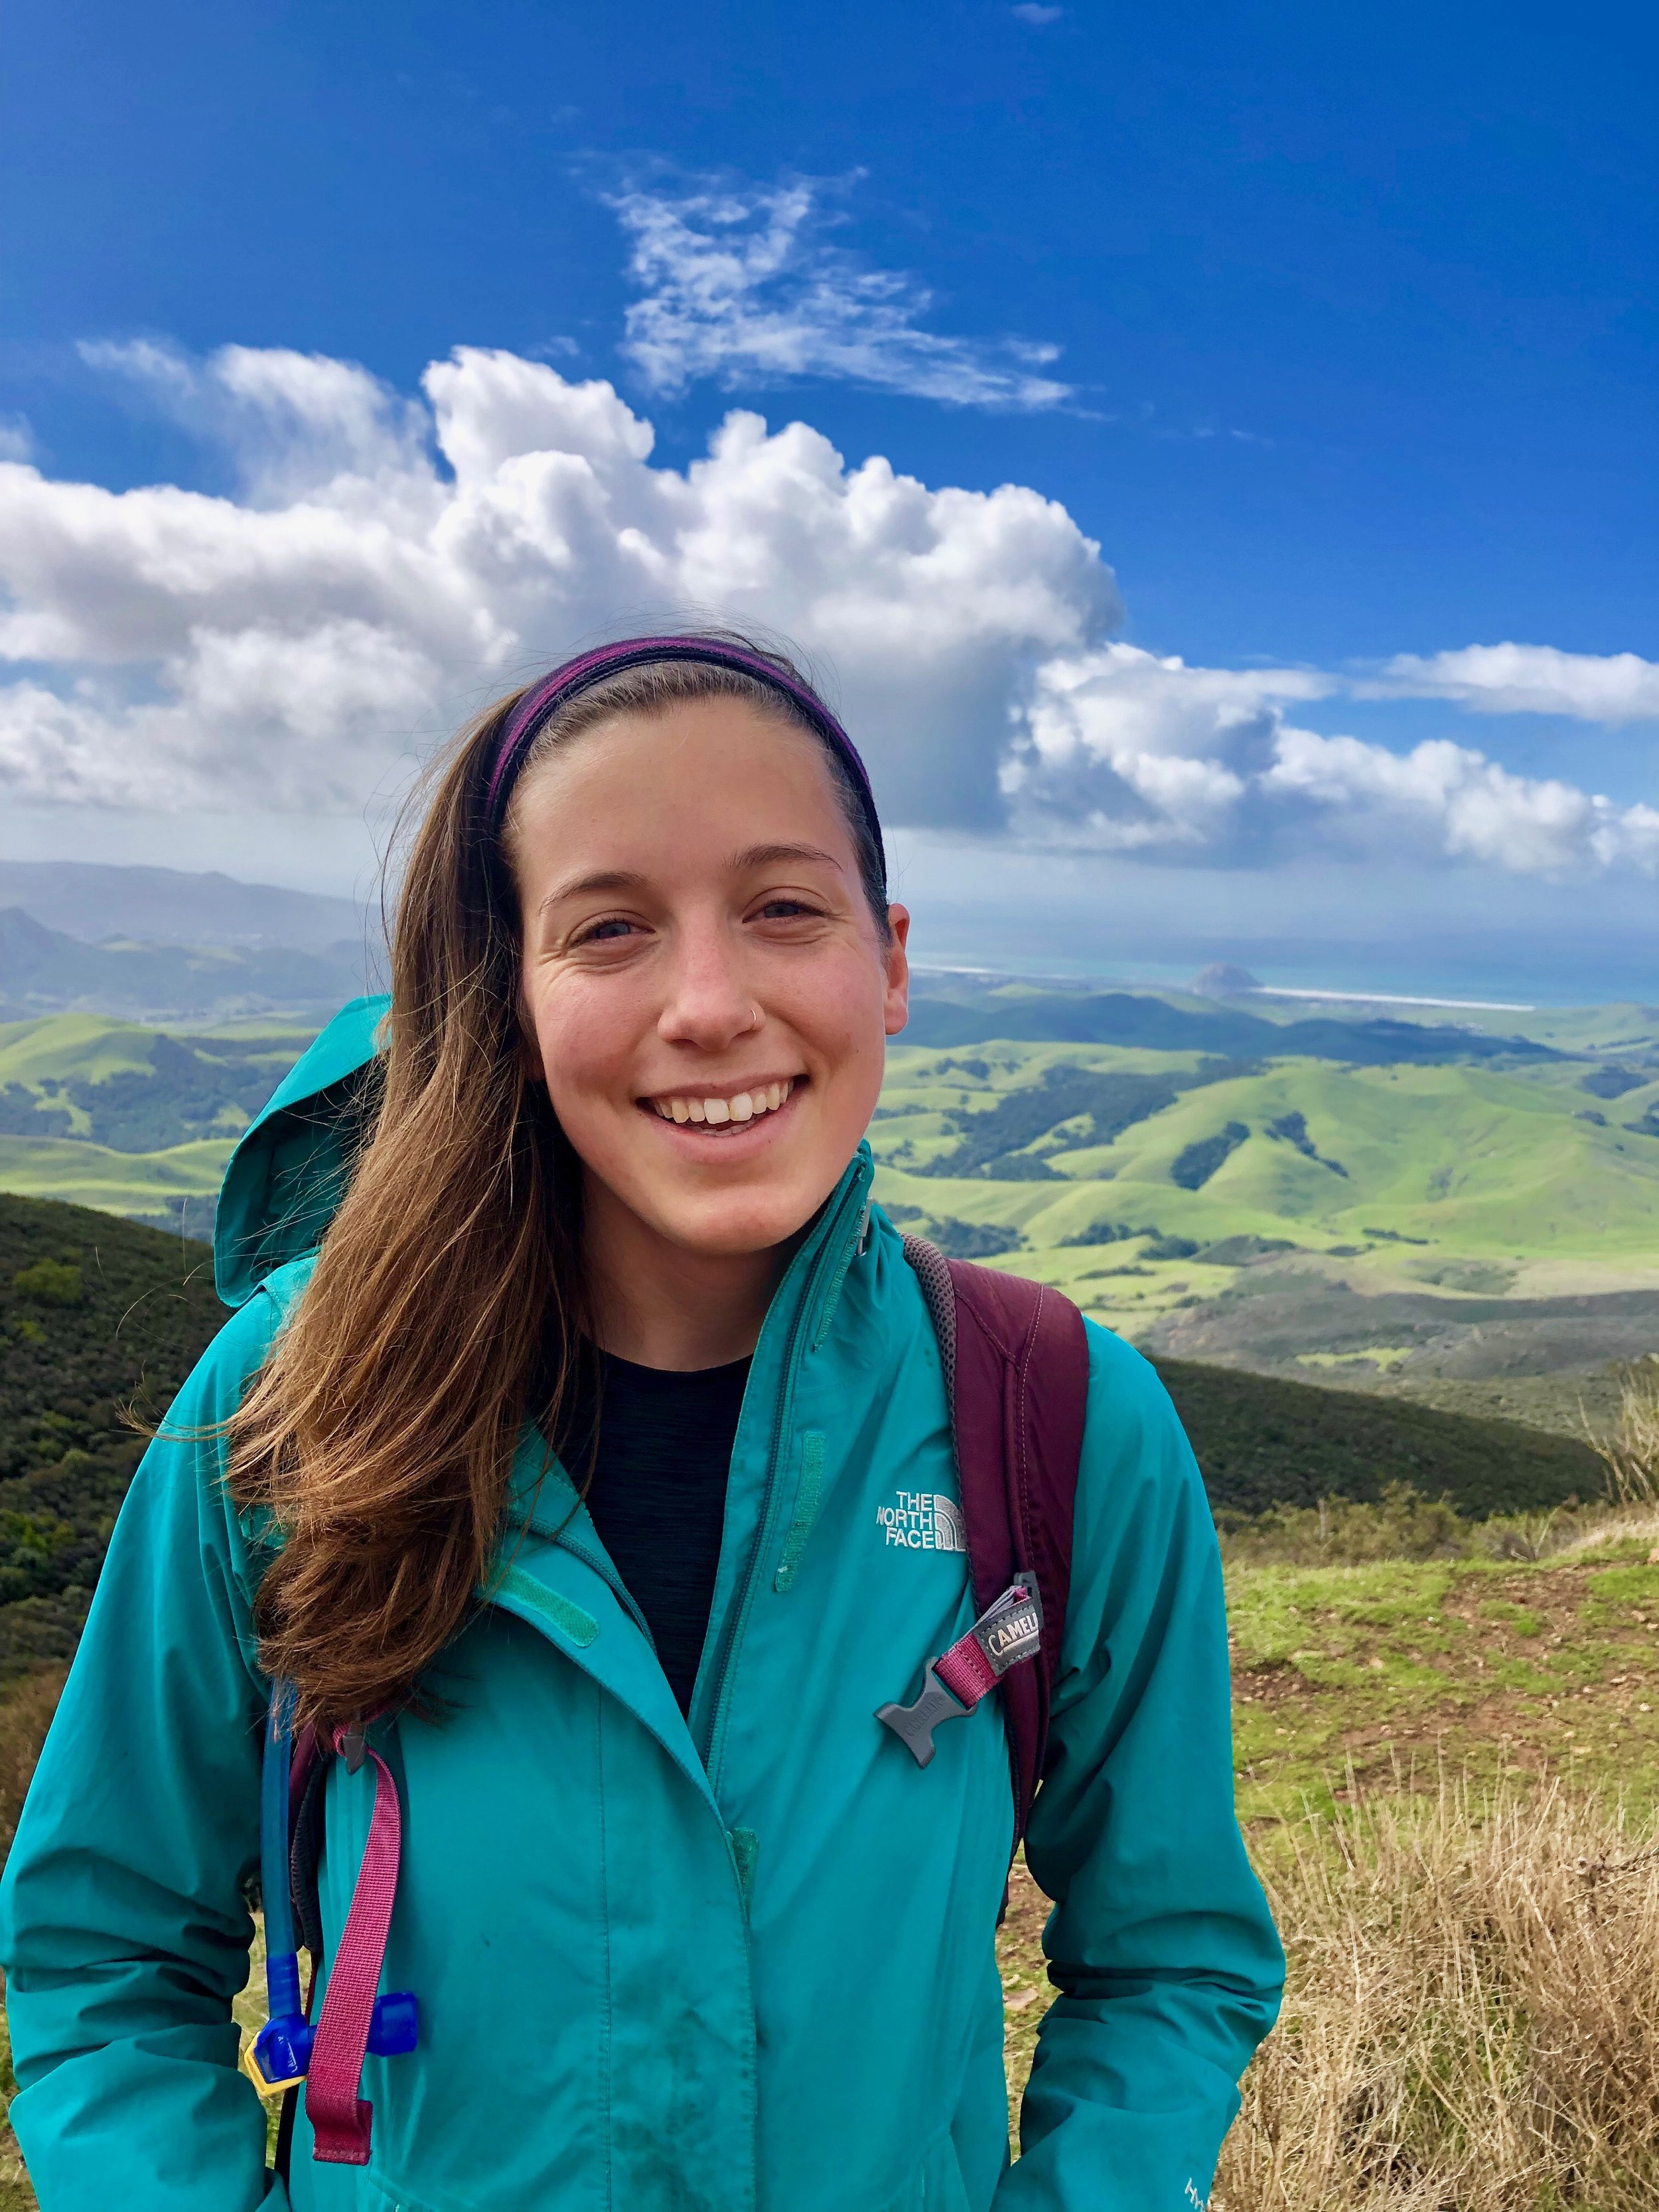 """- Holly Pierro, Program CoordinatorCamp name: OtterEducation: B.S. Zoology from Texas A&M UniversityInterests: Texas and chicken nuggetsFavorite quote: """"The more that you read, the more things you will know. The more that you learn, the more places you'll go."""" –Dr. Seuss"""